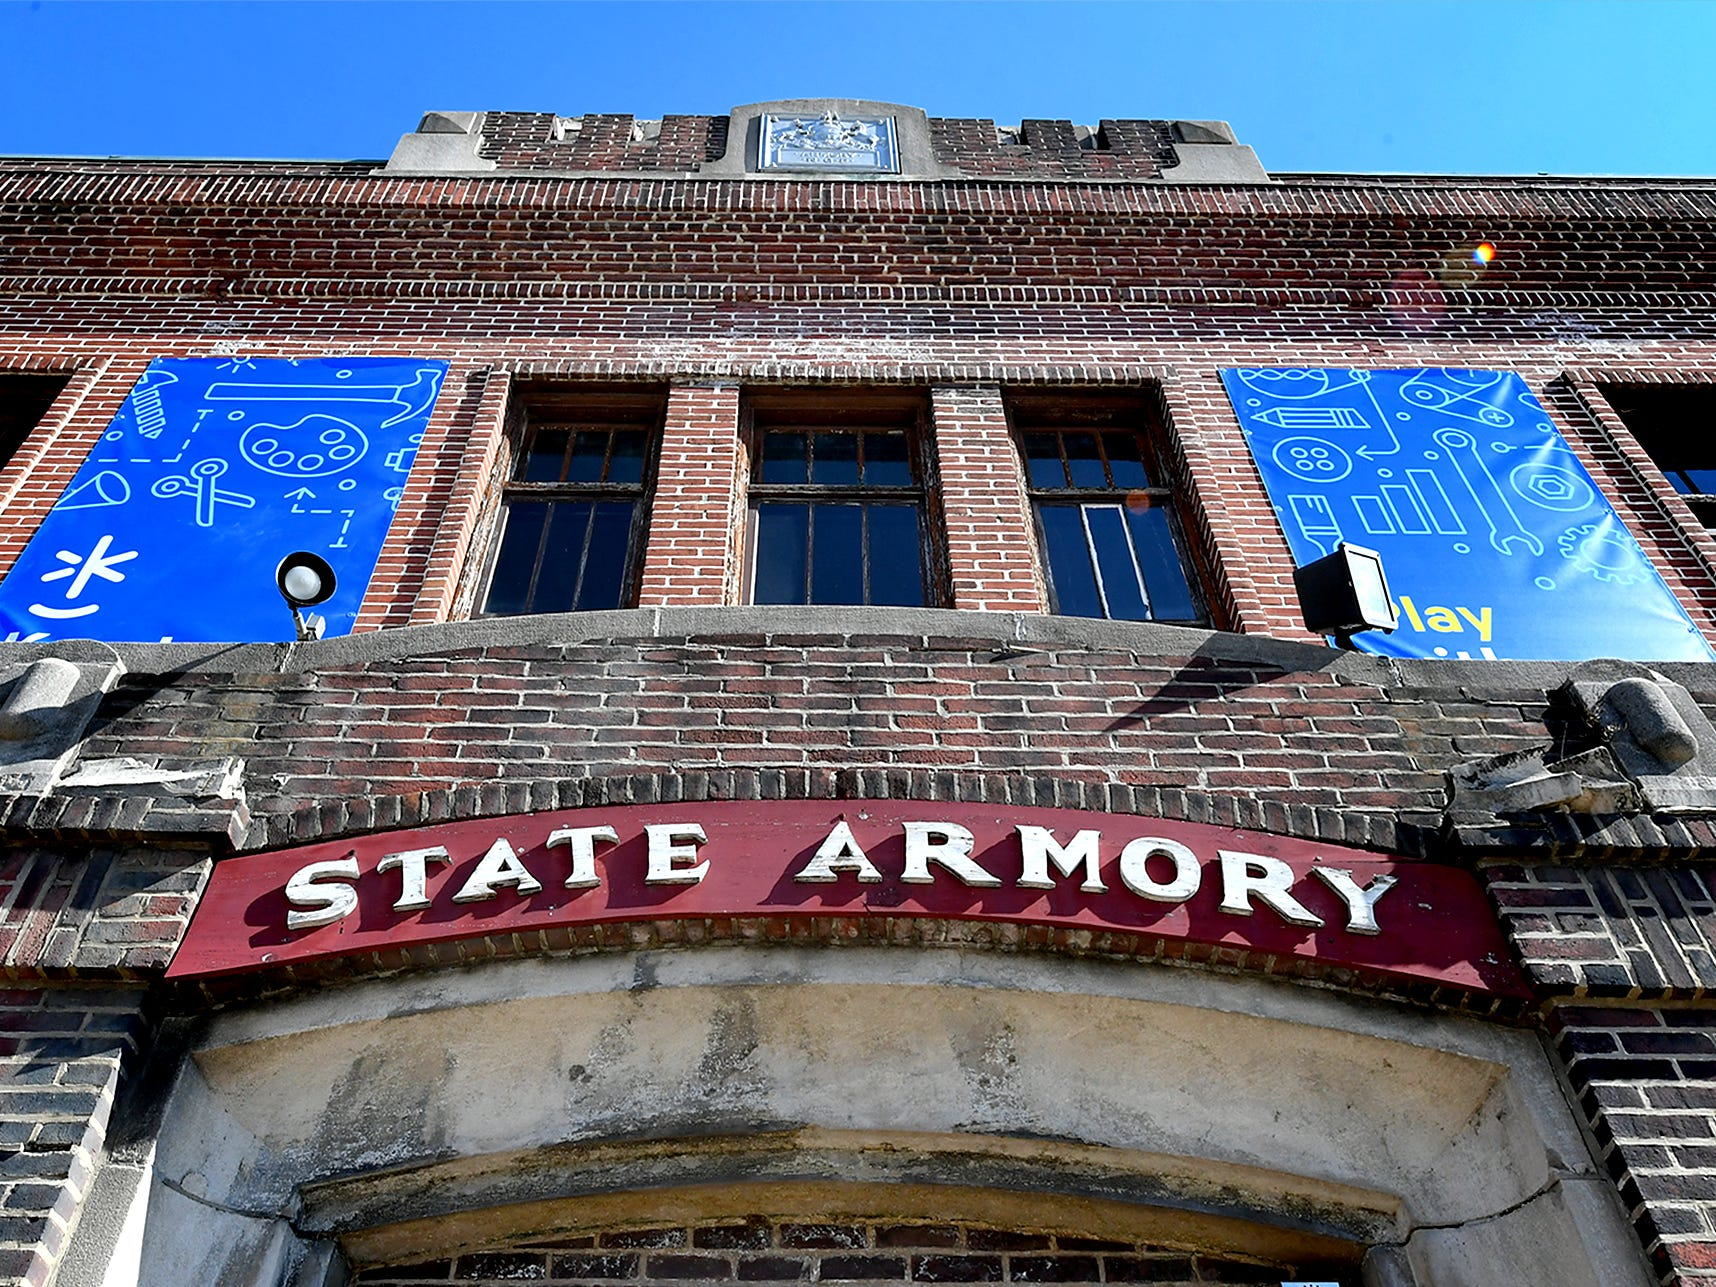 Keystone Kidspace founders announced a $6 million capital campaign during a press event at the York Armory Thursday, Feb. 28, 2019, to transform the building into an experiential learning center. Construction is slated to start this summer with an opening date of summer 2020. Bill Kalina photo